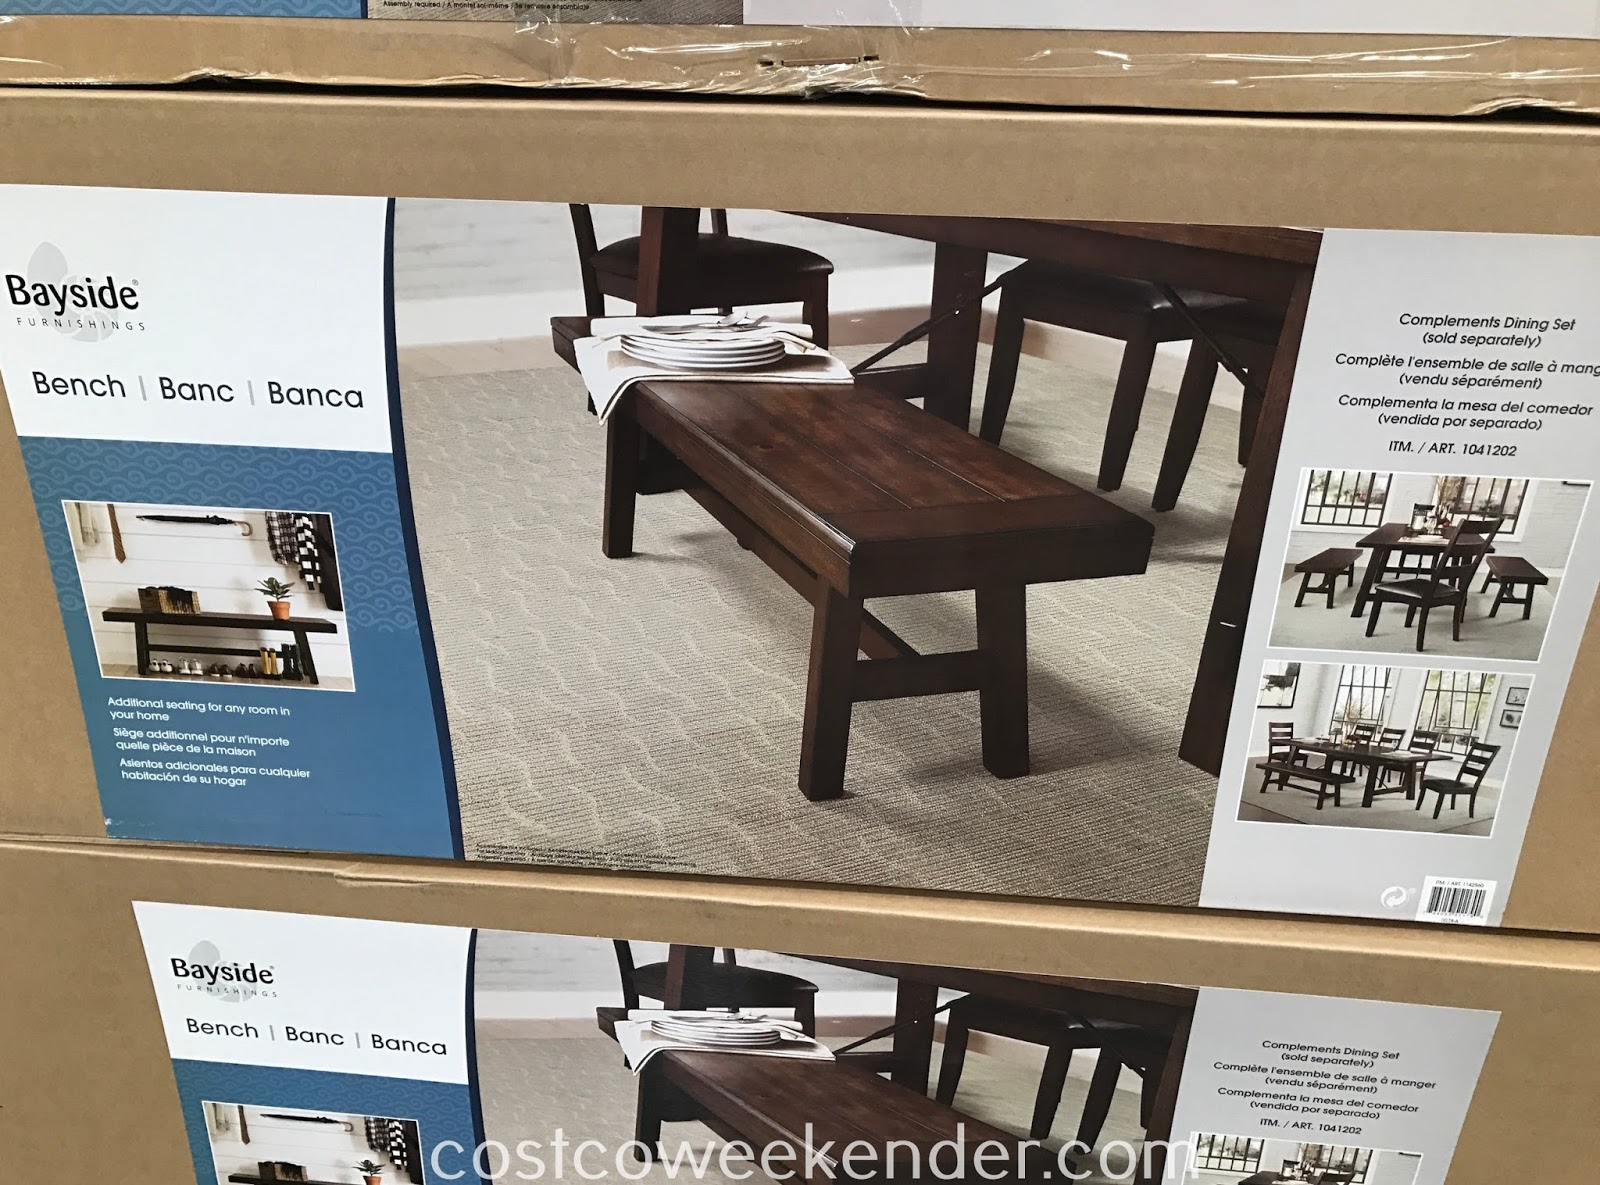 Costco 1142560 - Bayside Furnishings: great for your living room or family room